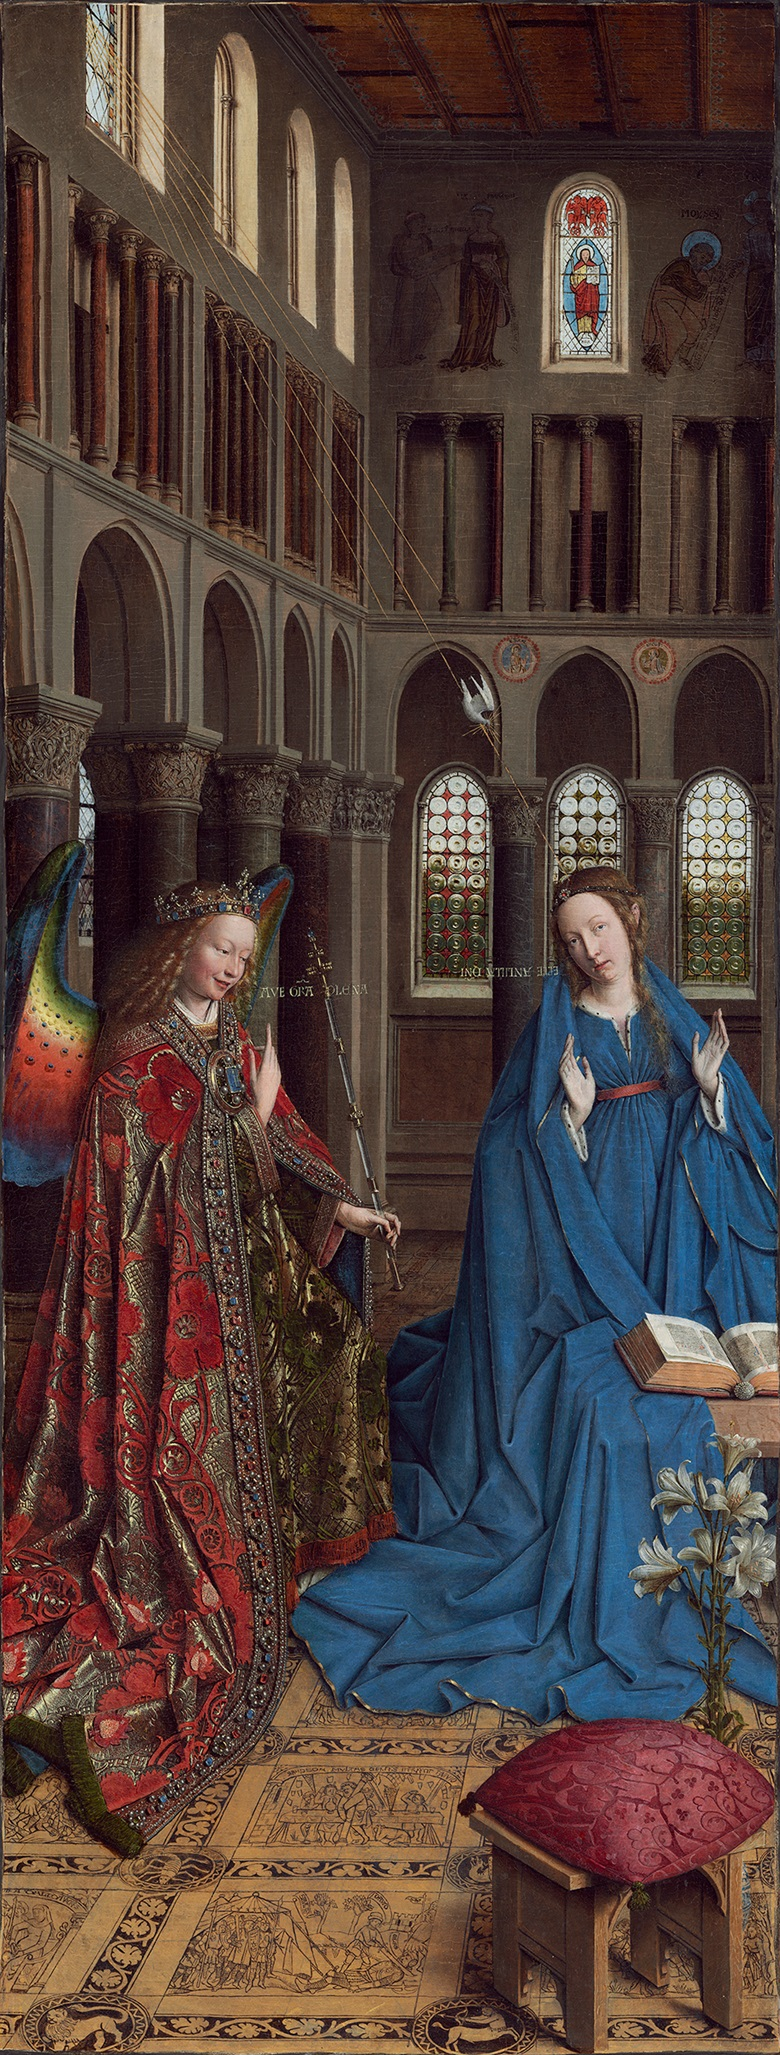 Jan van Eyck (c. 1390-1441), The Annunciation, c.1434-1436. Oil on panel, transferred onto canvas. 92.7 x 36.7 cm. National Gallery of Art, Washington, Andrew W. Mellon Collection